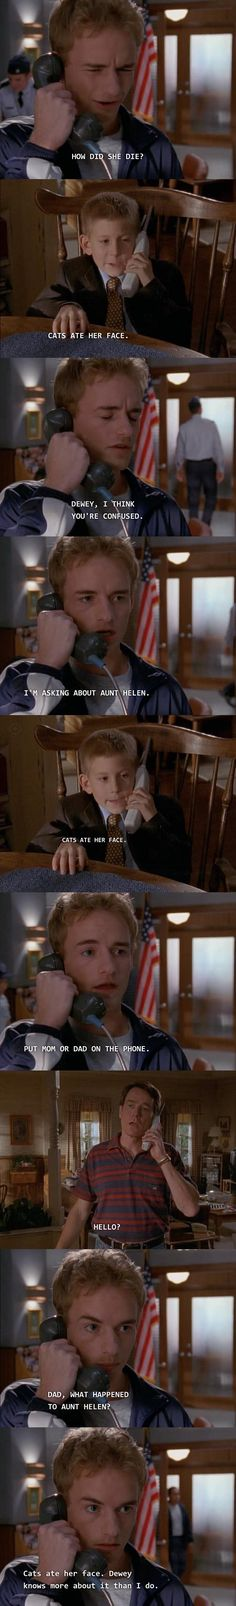 One of my favorite moments from Malcom in the Middle